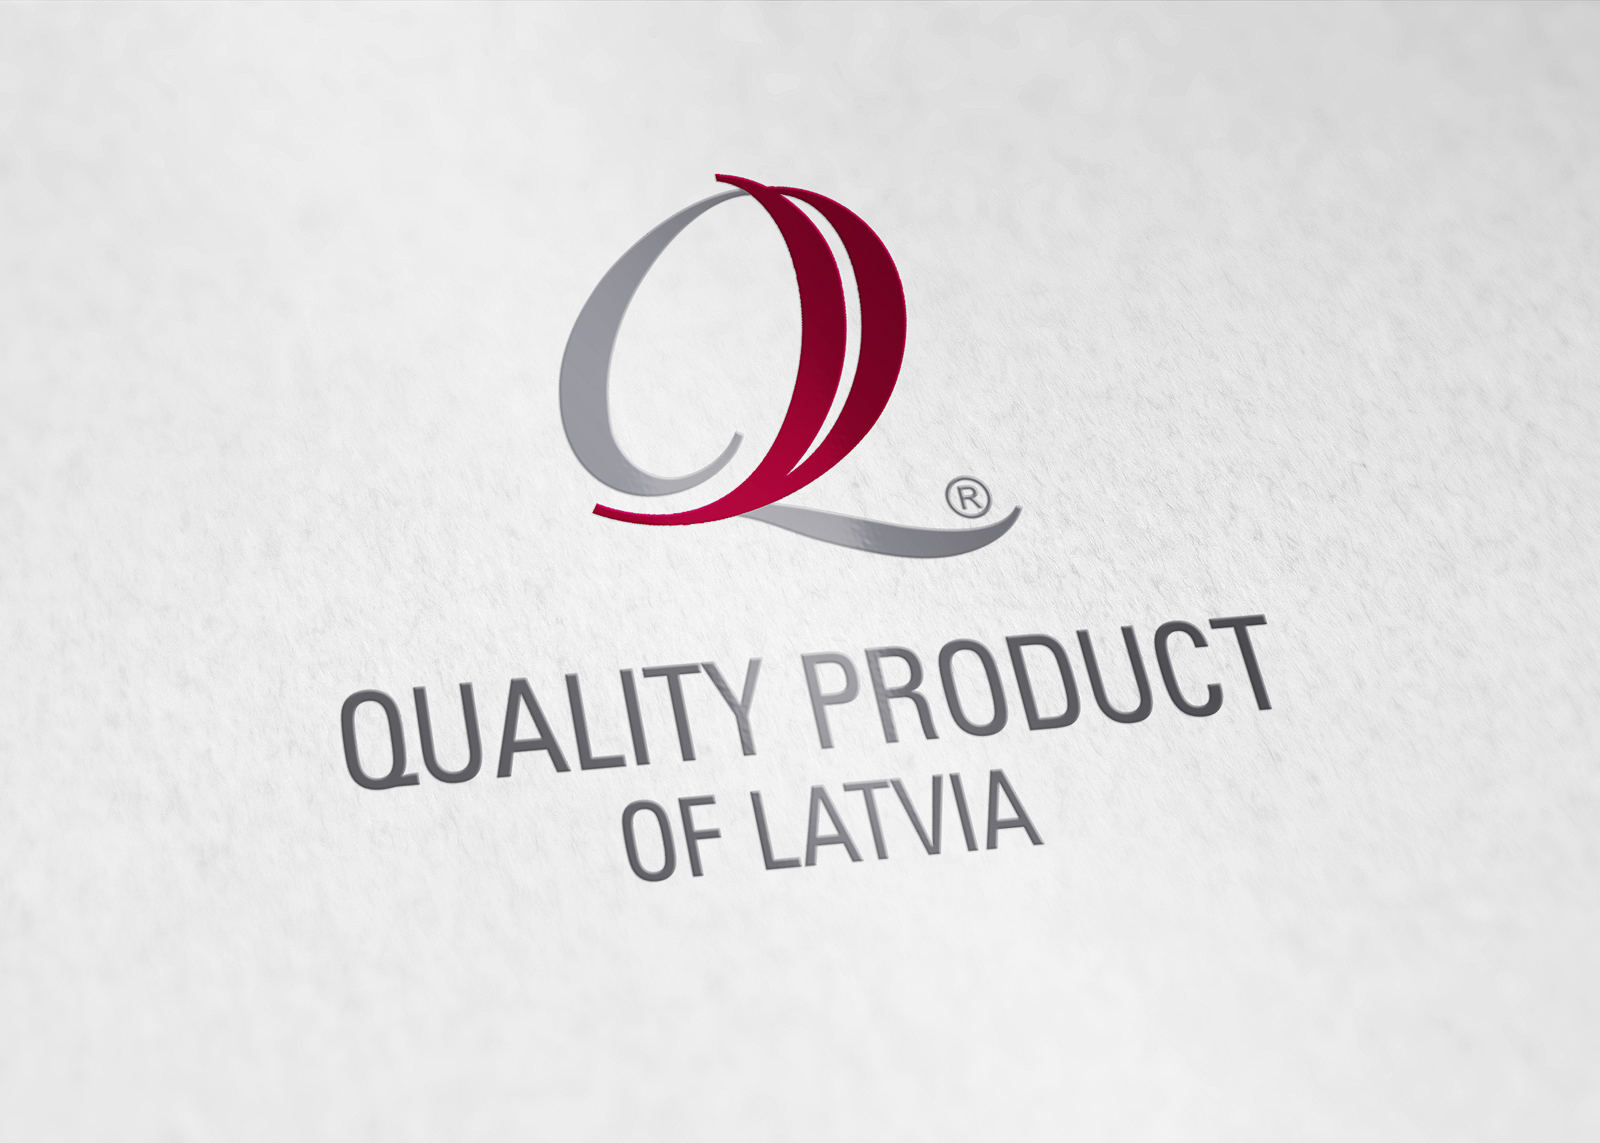 quality product of Latvia